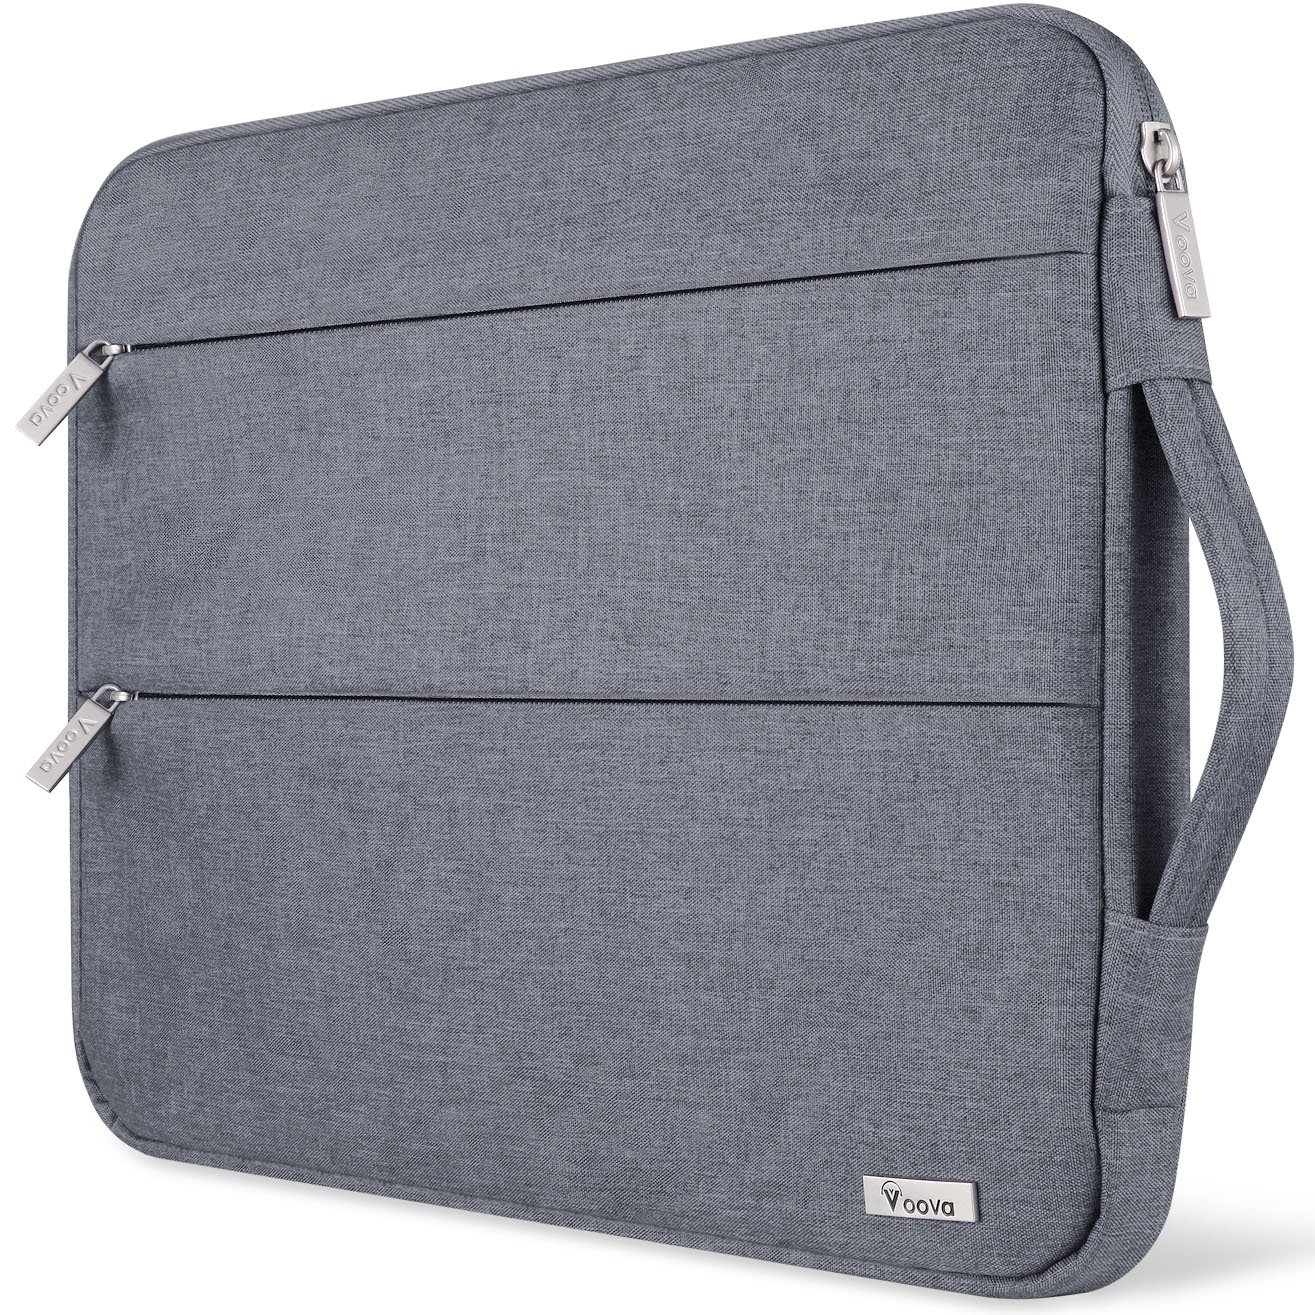 Voova 15.6 14 15 Inch Laptop Sleeve Case with Handle Waterproof Protective Cover Bag Compatible with MacBook Pro 15.4'', Surface Book 2 15'', Asus Acer Hp with Pocket, Gray